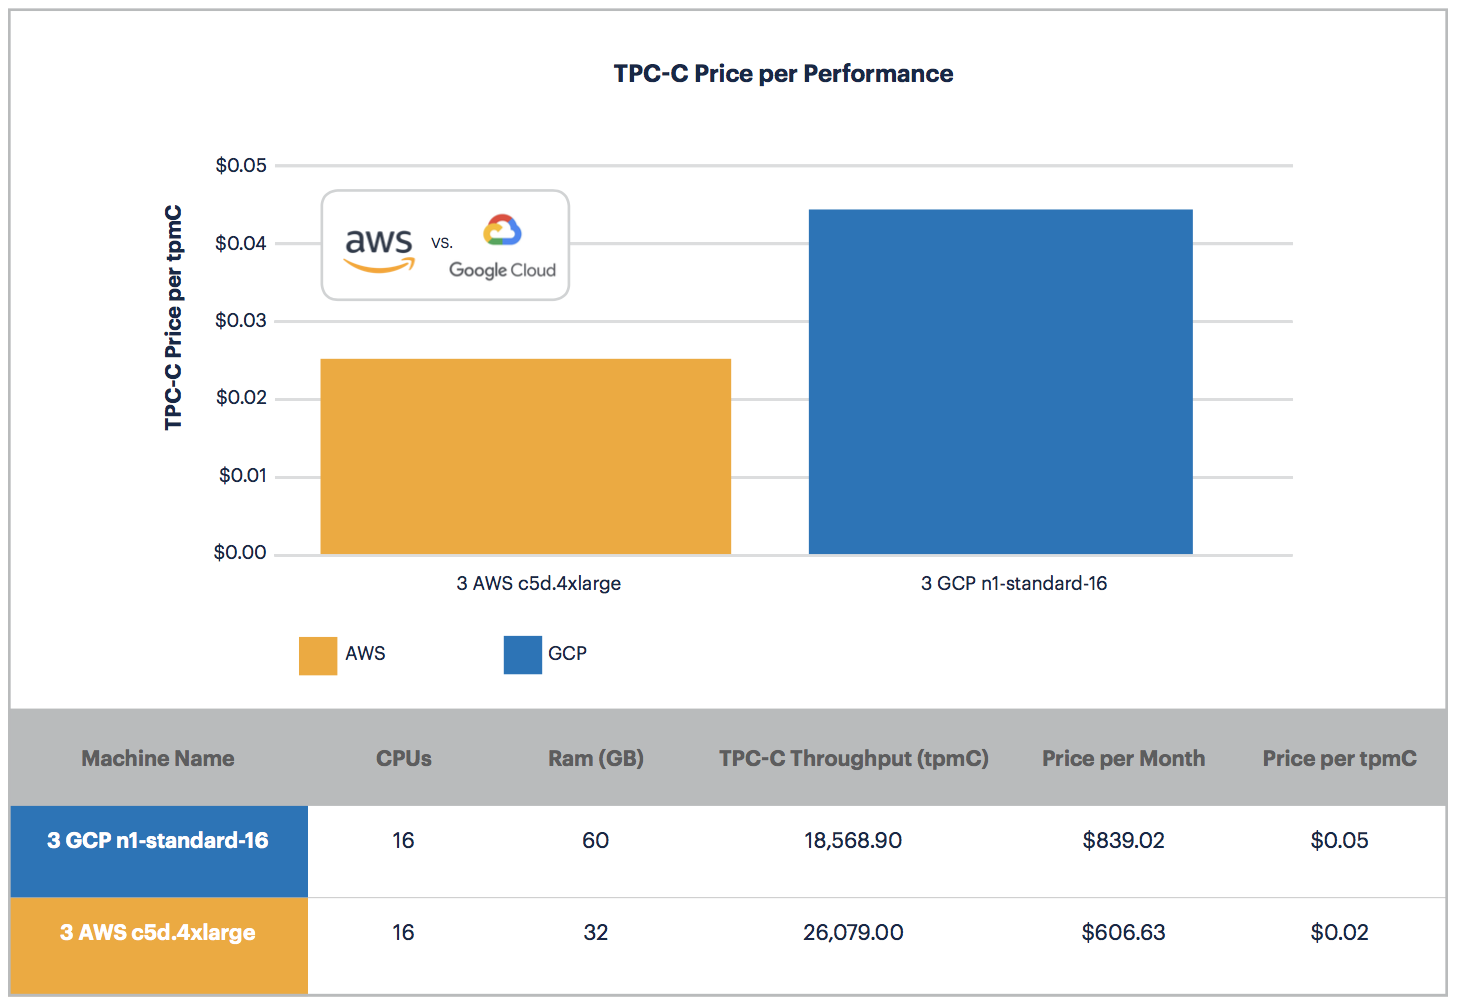 AWS vs. GCP: Price Per Performance on the TPC-C Benchmark